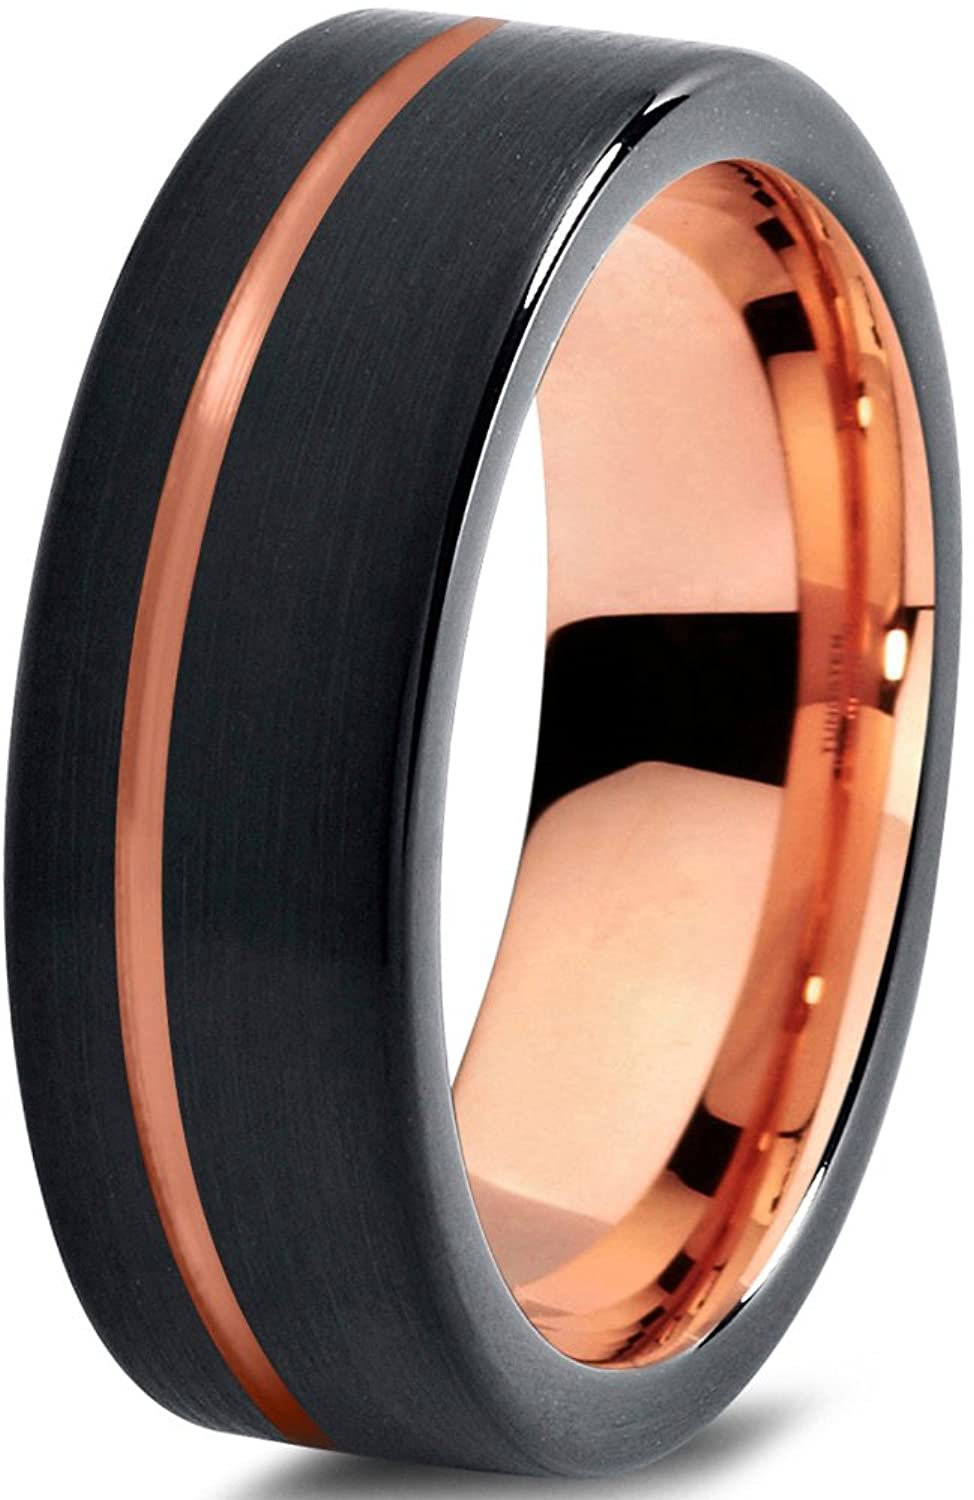 Tungsten Wedding Band Ring 7mm for Men Women Black & 18K Rose Gold Plated Pipe Cut Brushed Polished